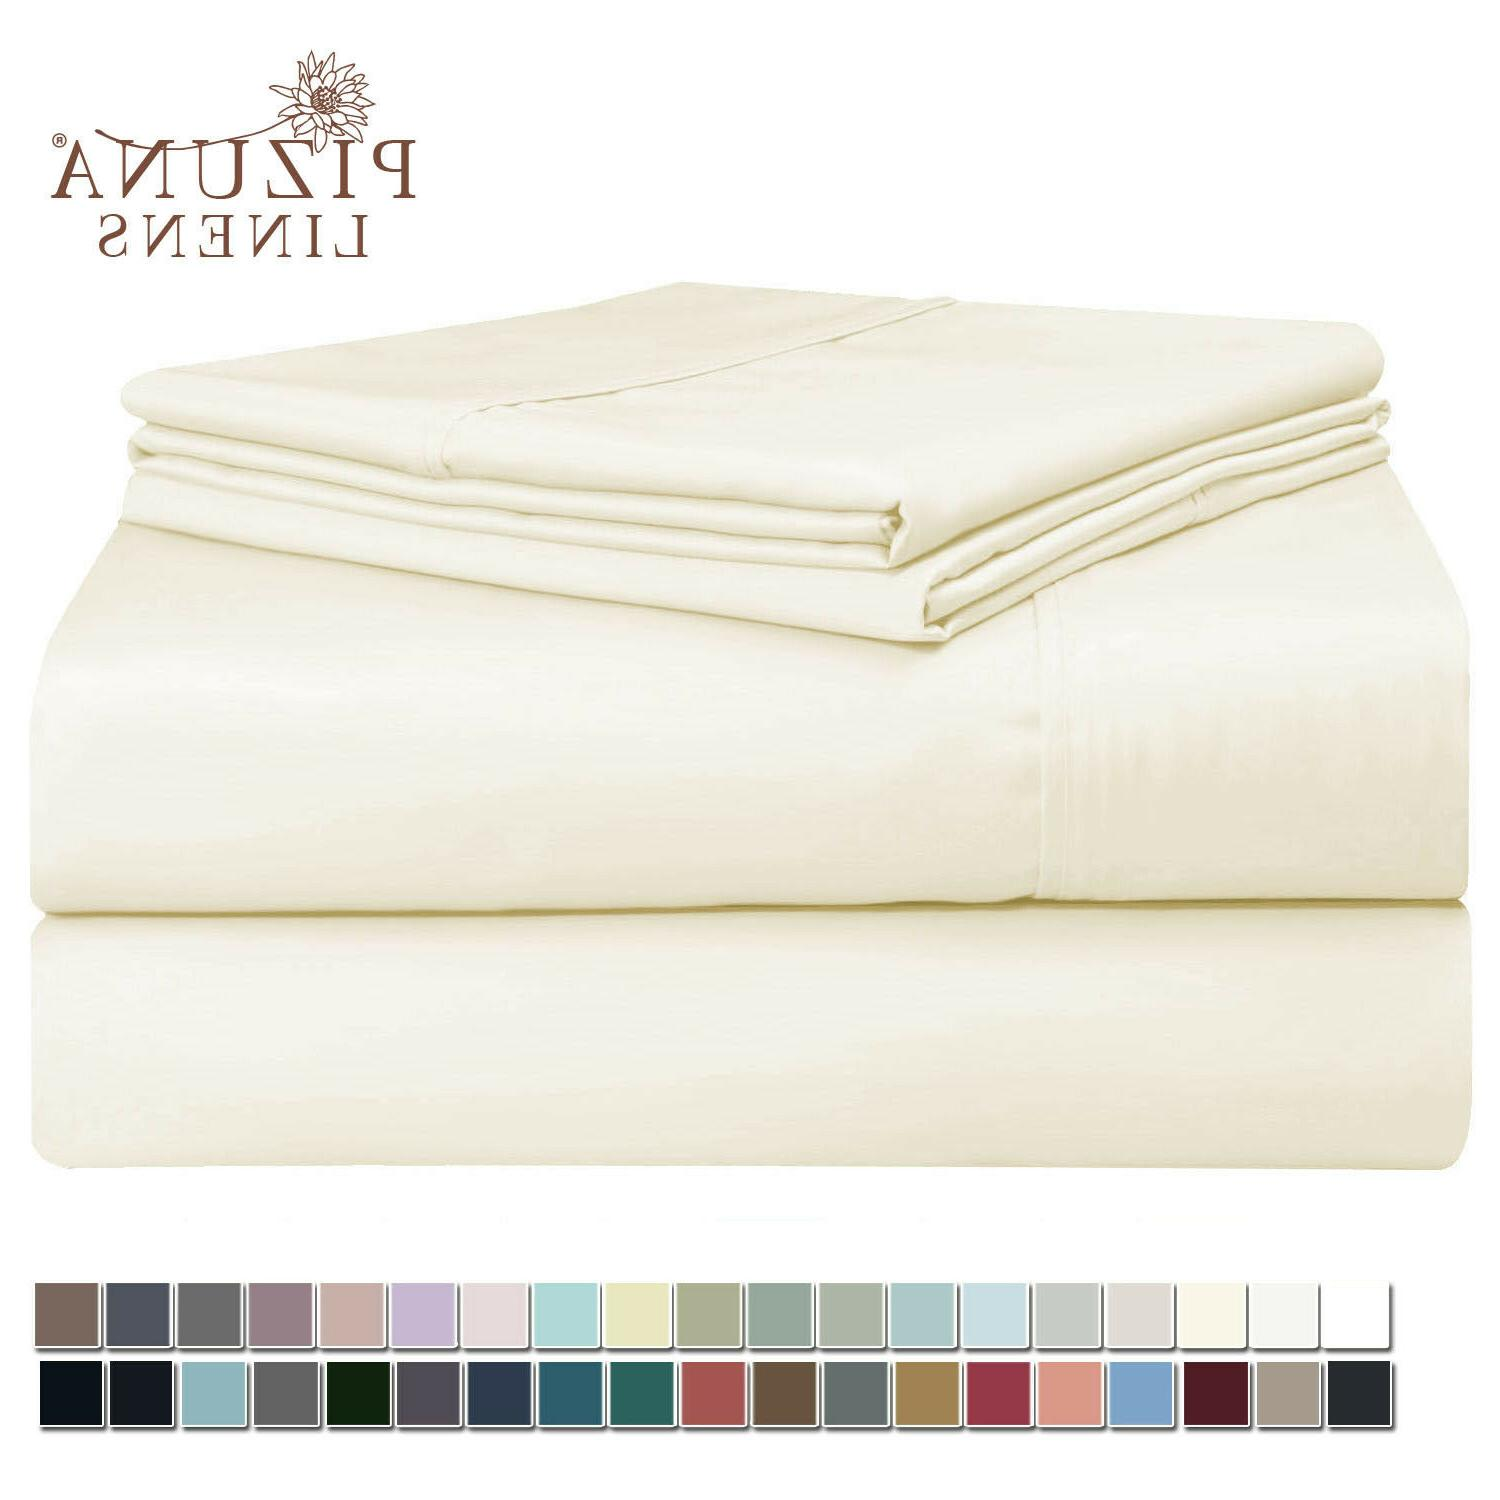 Utopia Bedding Flat Sheet  Brushed Microfiber, Breathable, E